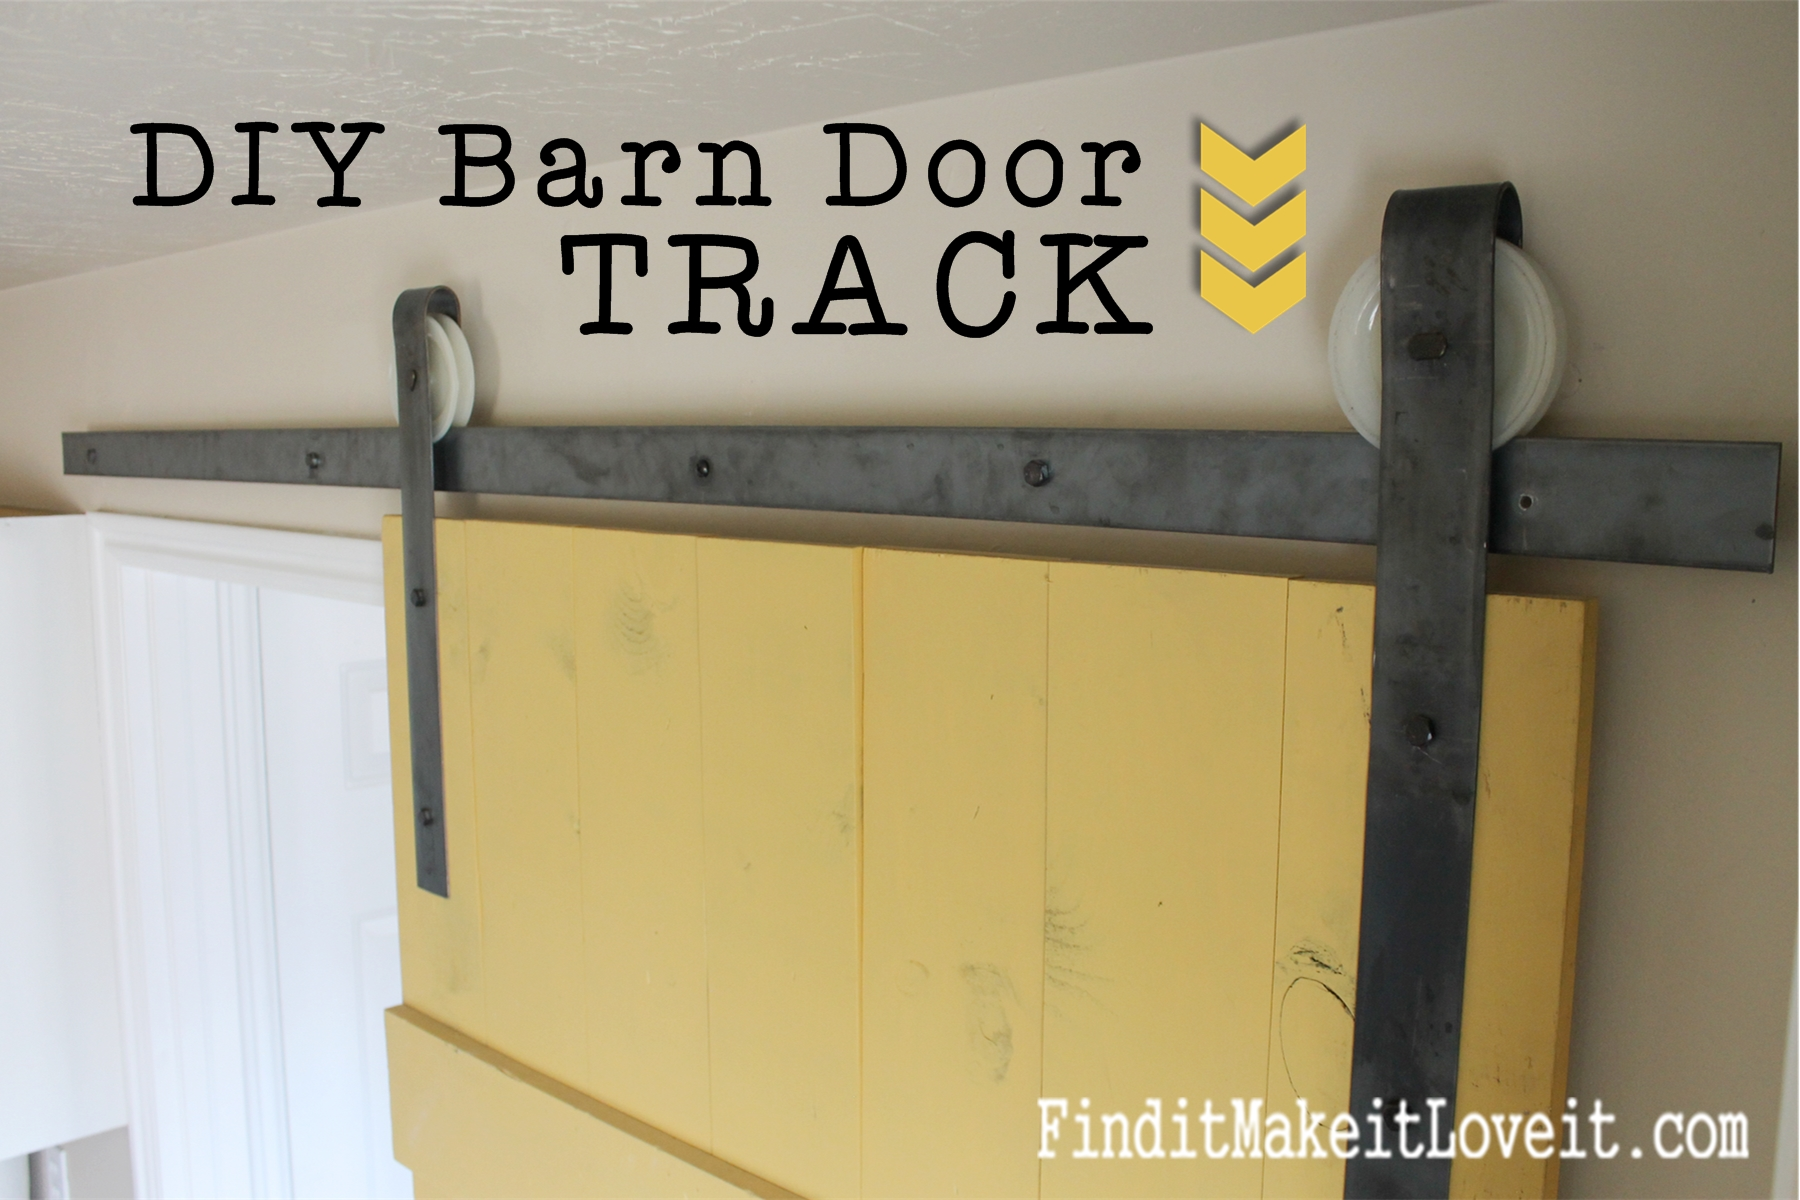 Diy barn door track find it make it love it diy barn door hardware 9 vtopaller Image collections